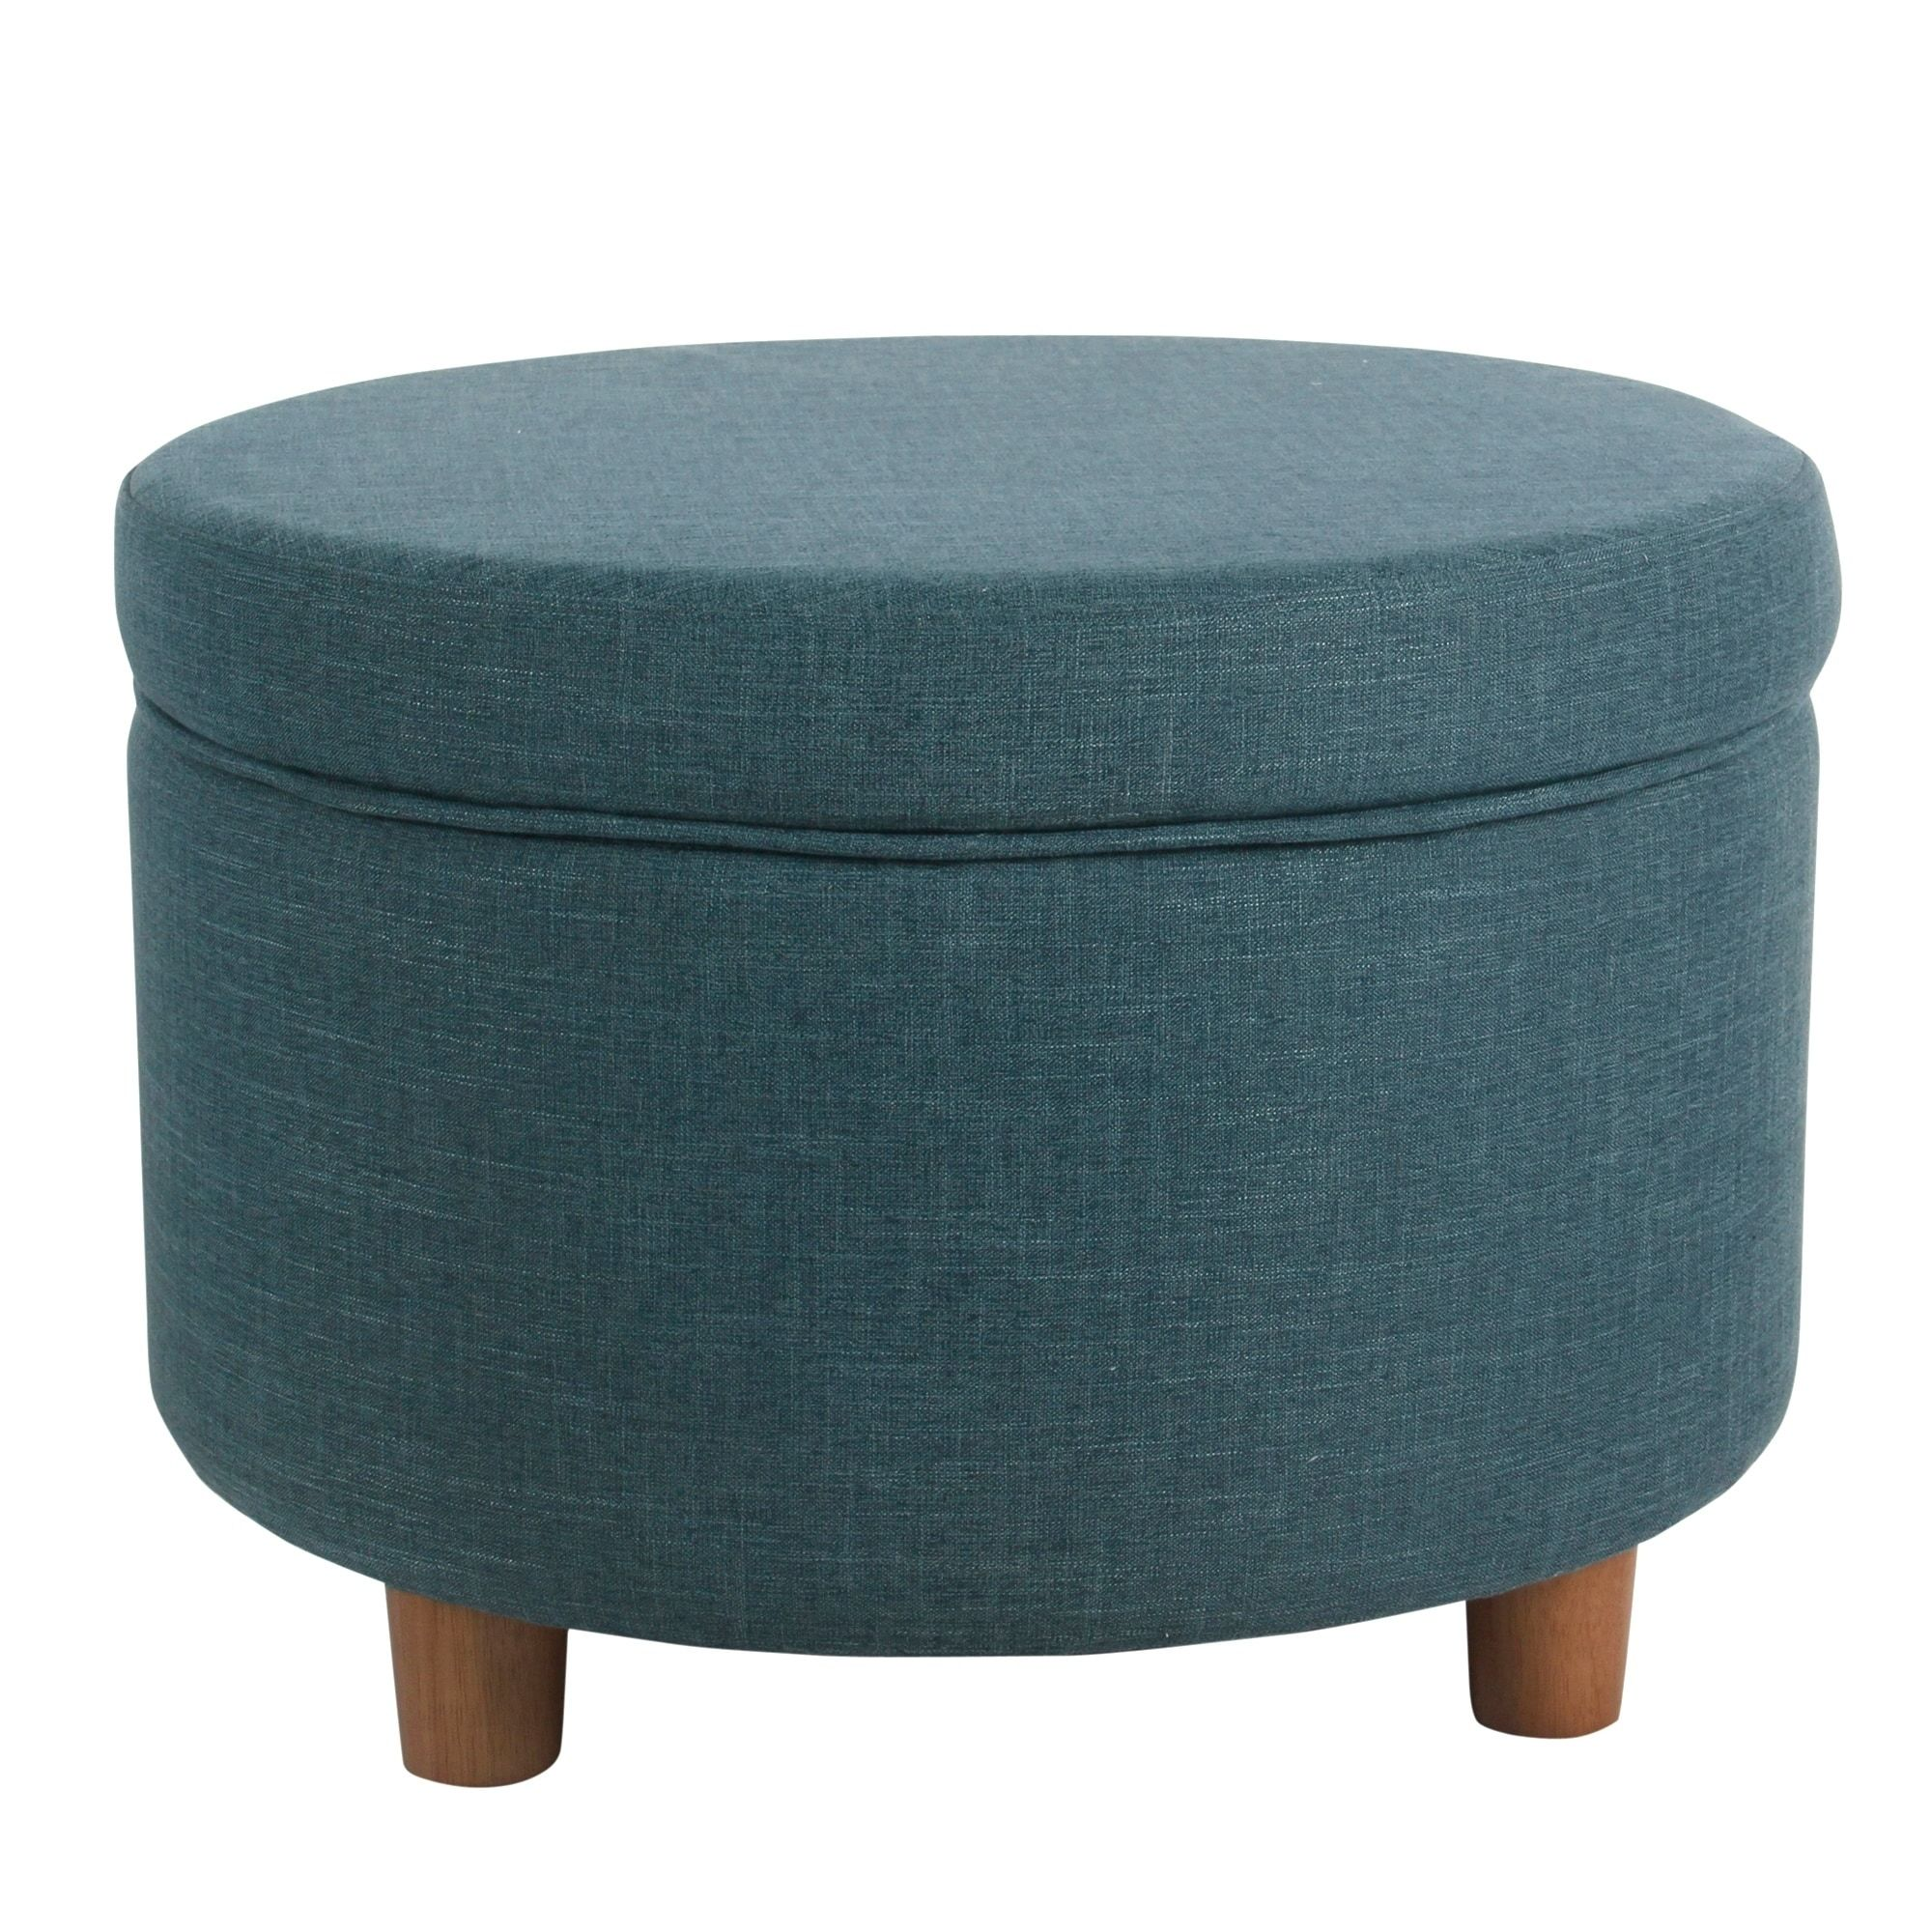 Homepop Round Storage Ottoman Teal Teal Blue Size Large